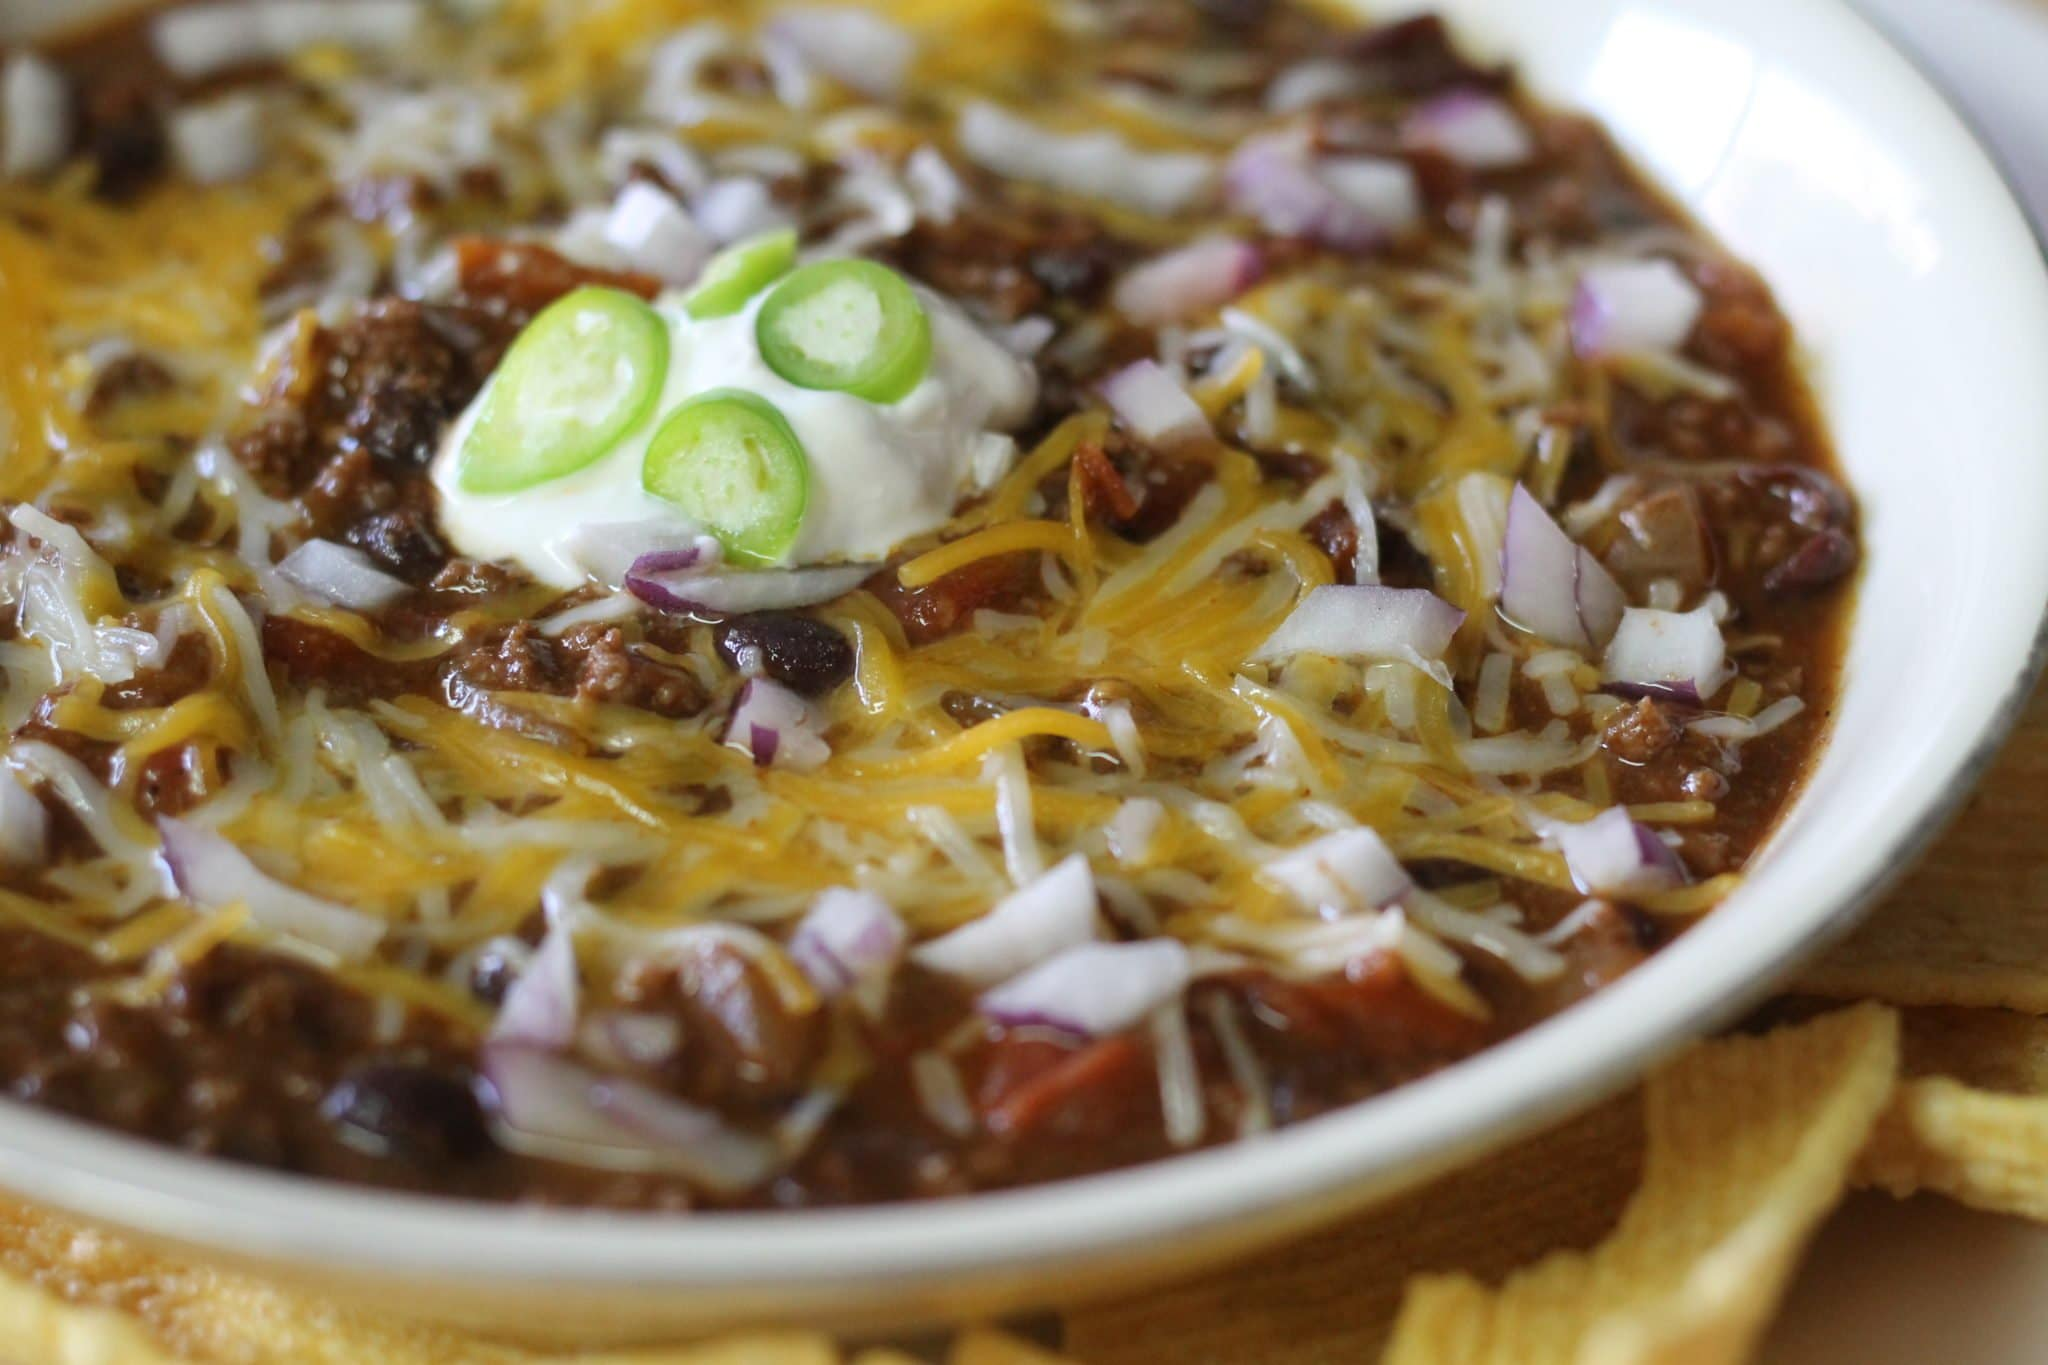 Spicy Bison Chili Recipe